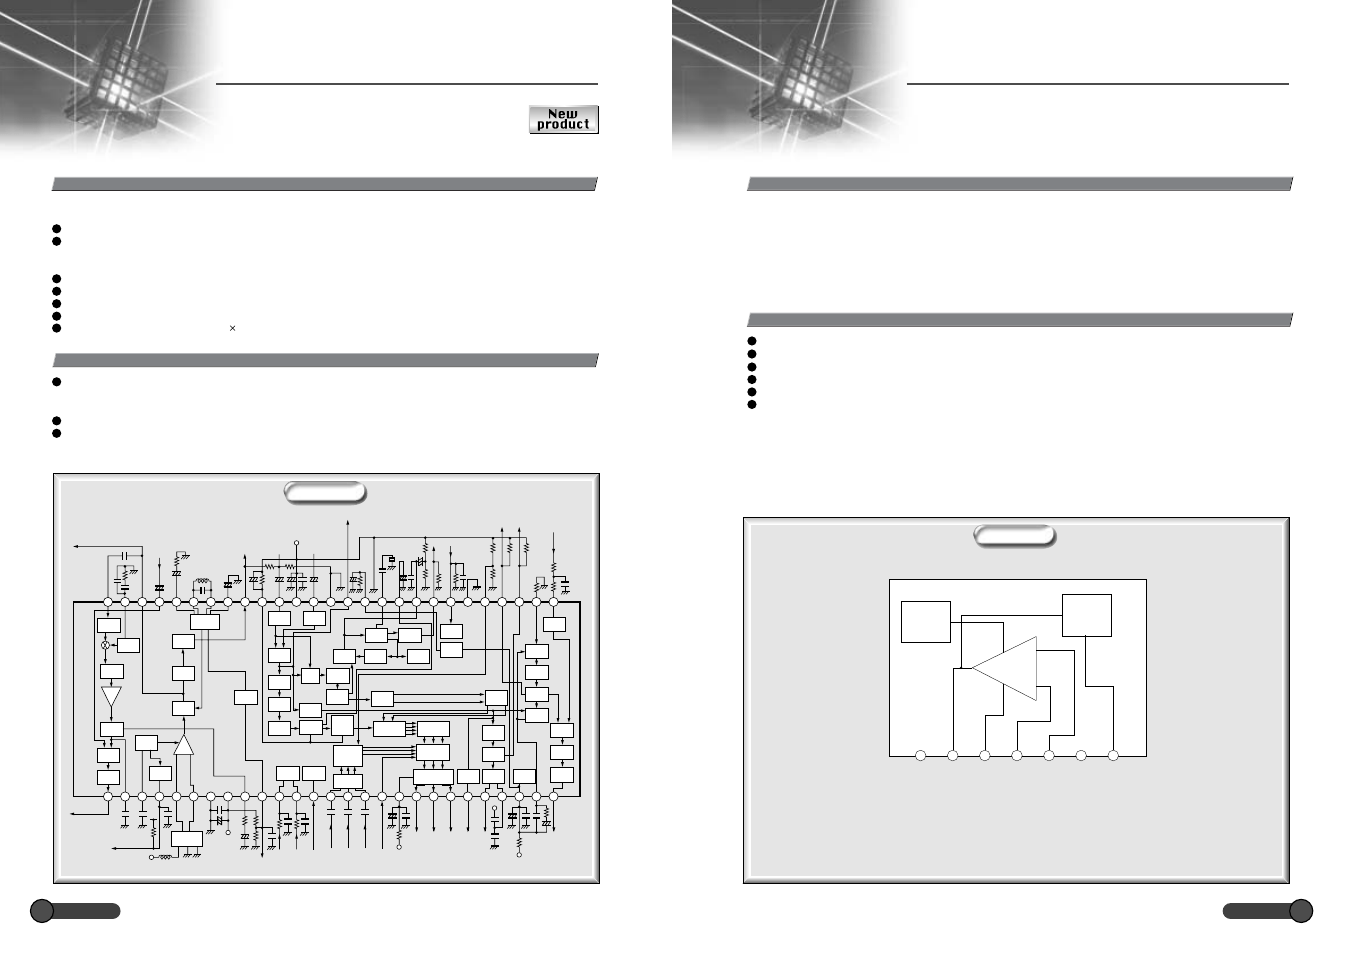 hight resolution of la7840 vertical output ic overview sanyo ep58b user manual page 13 34